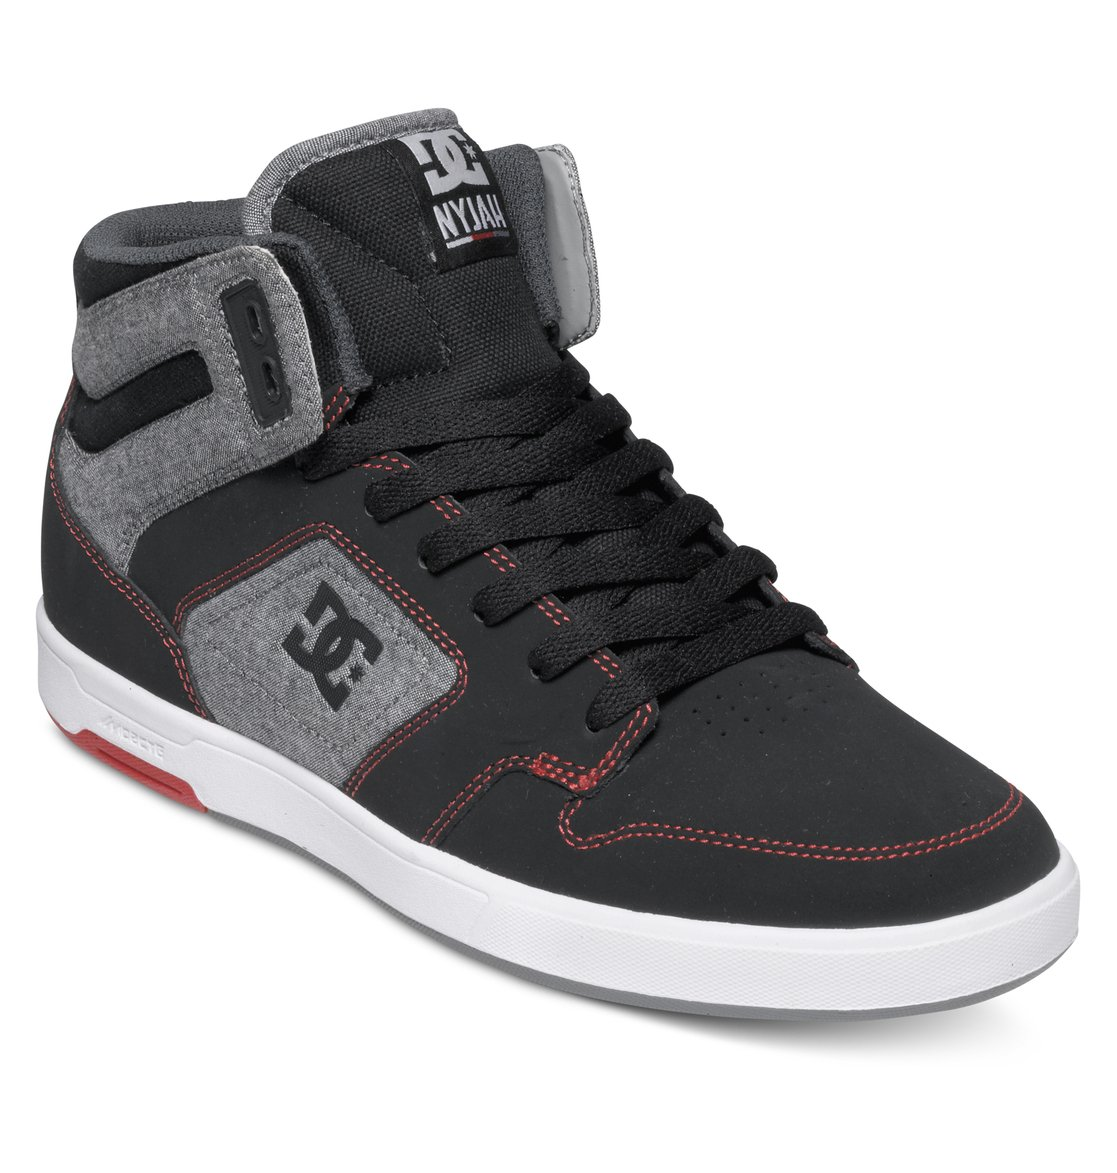 s nyjah high top shoes 320361 dc shoes